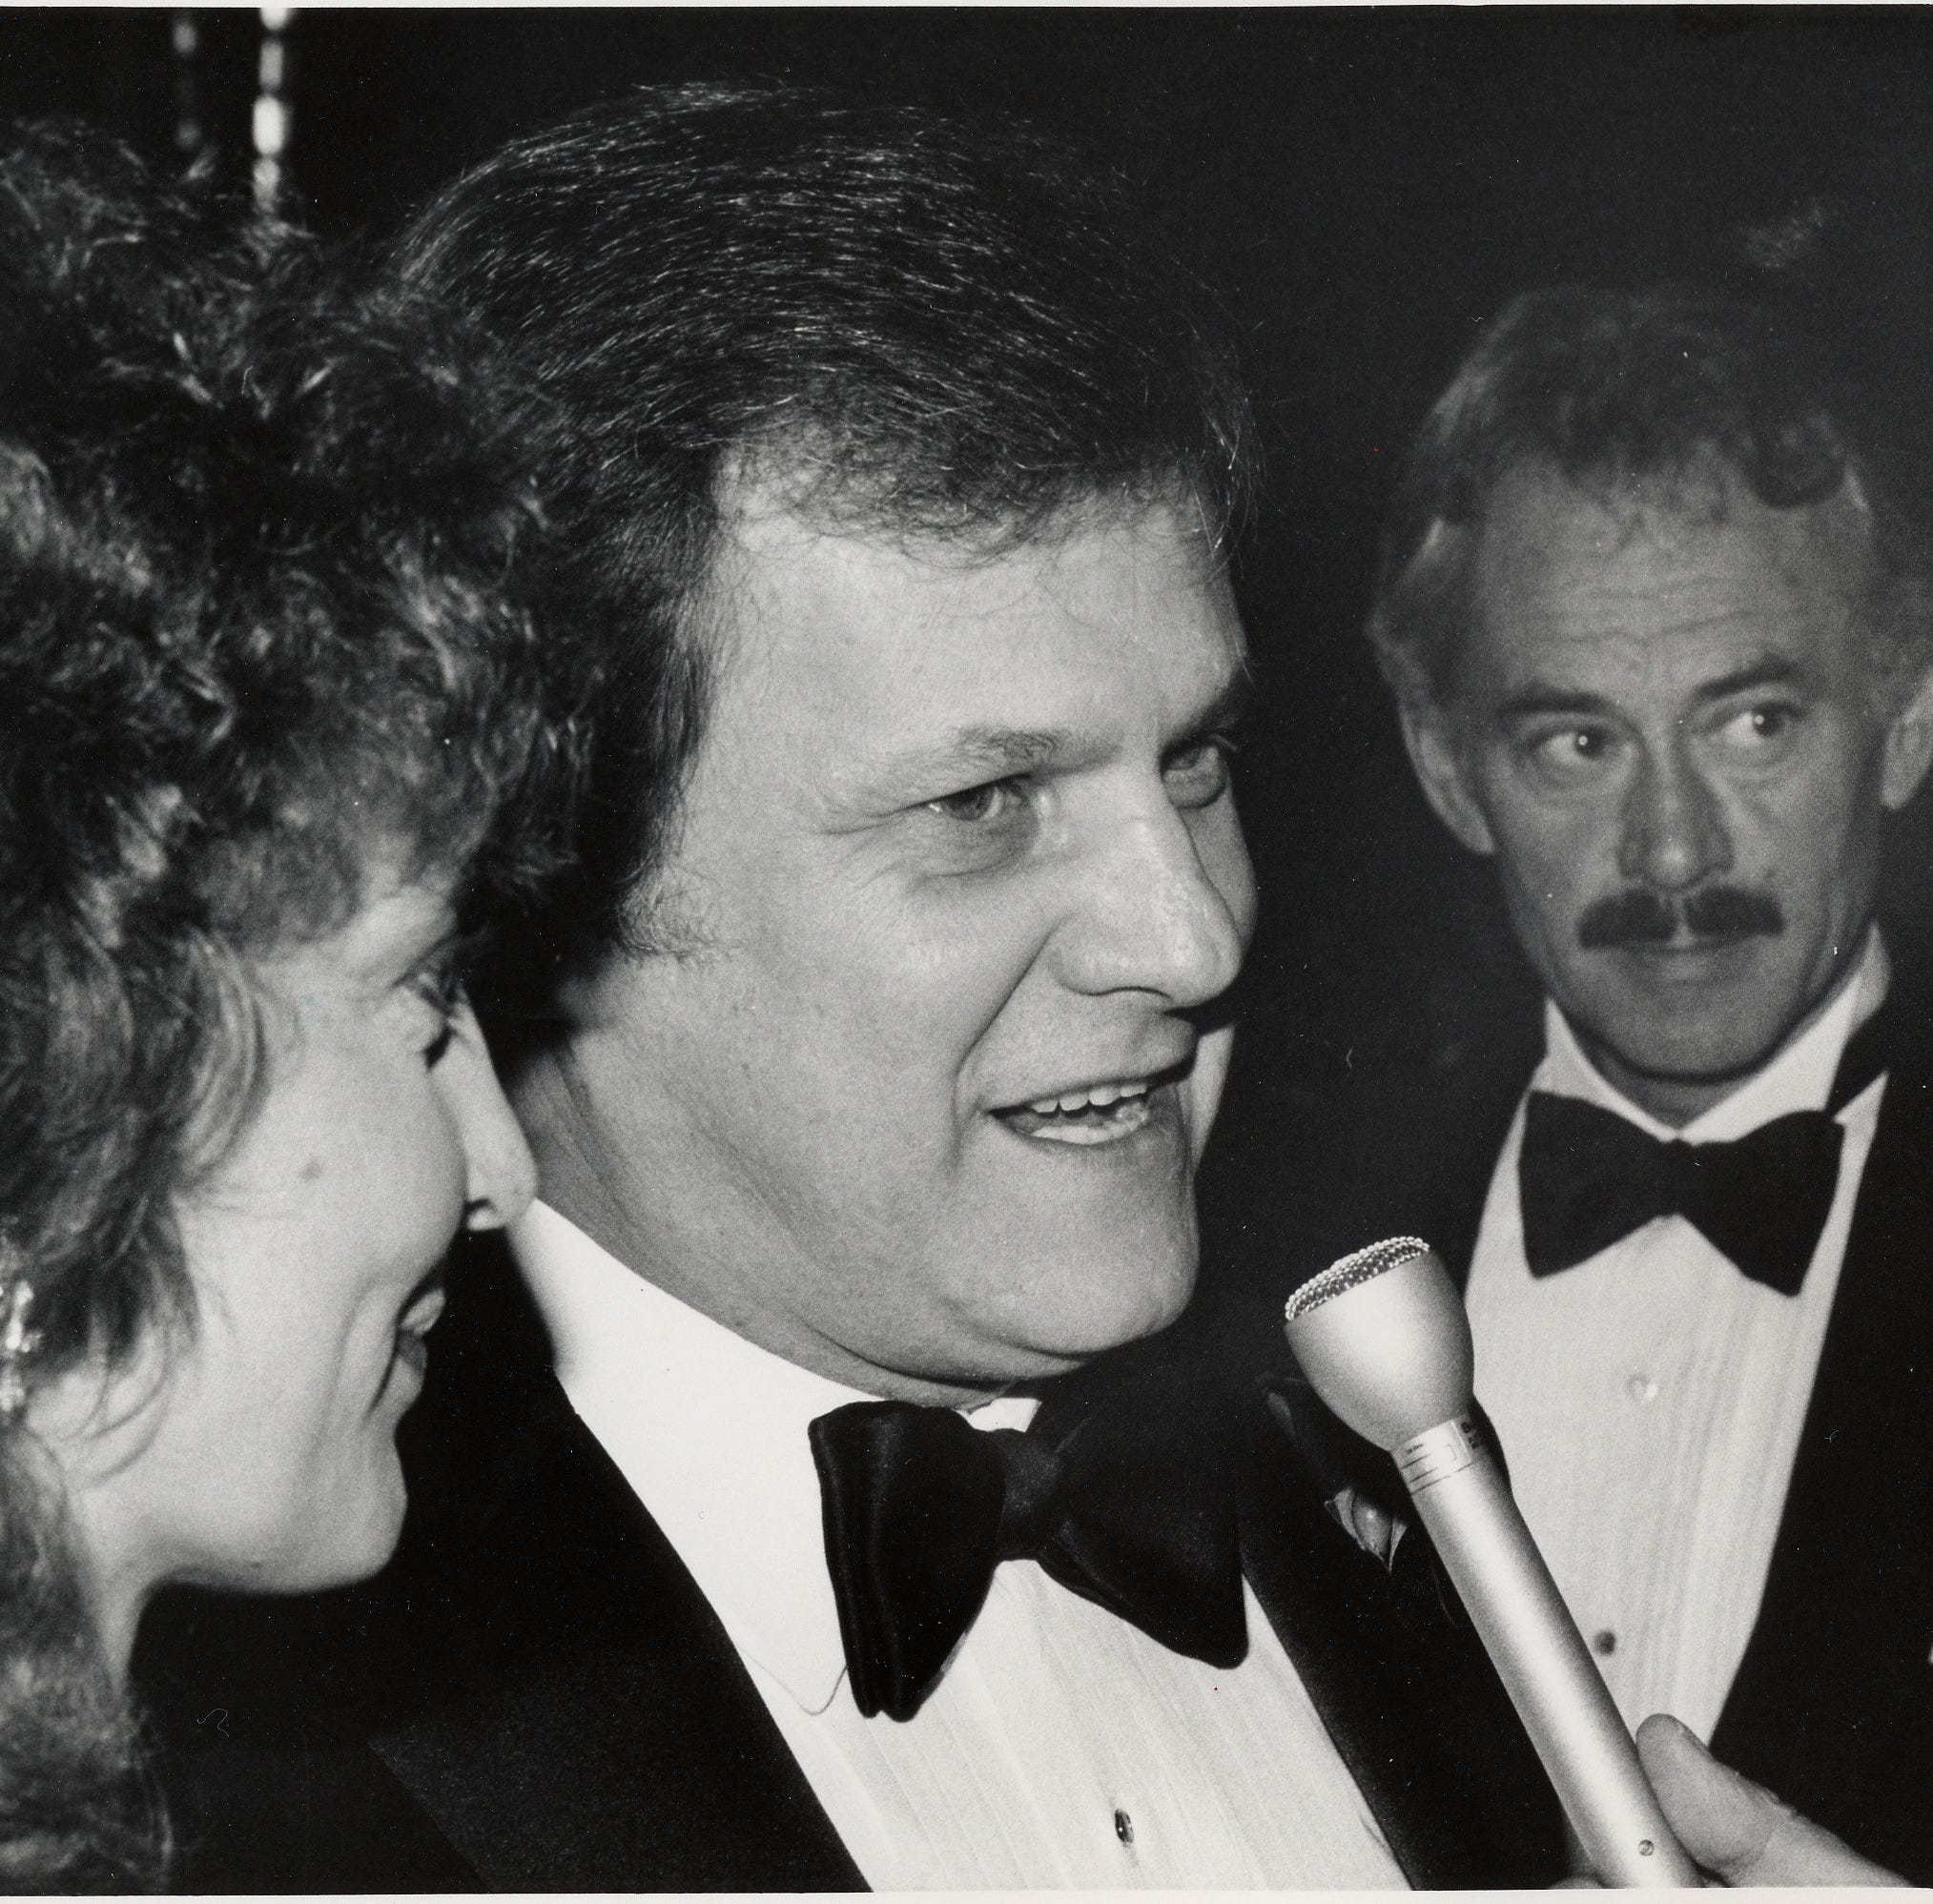 Longtime 'Dallas' star Ken Kercheval, who played J.R. Ewing's rival Cliff Barnes, has died